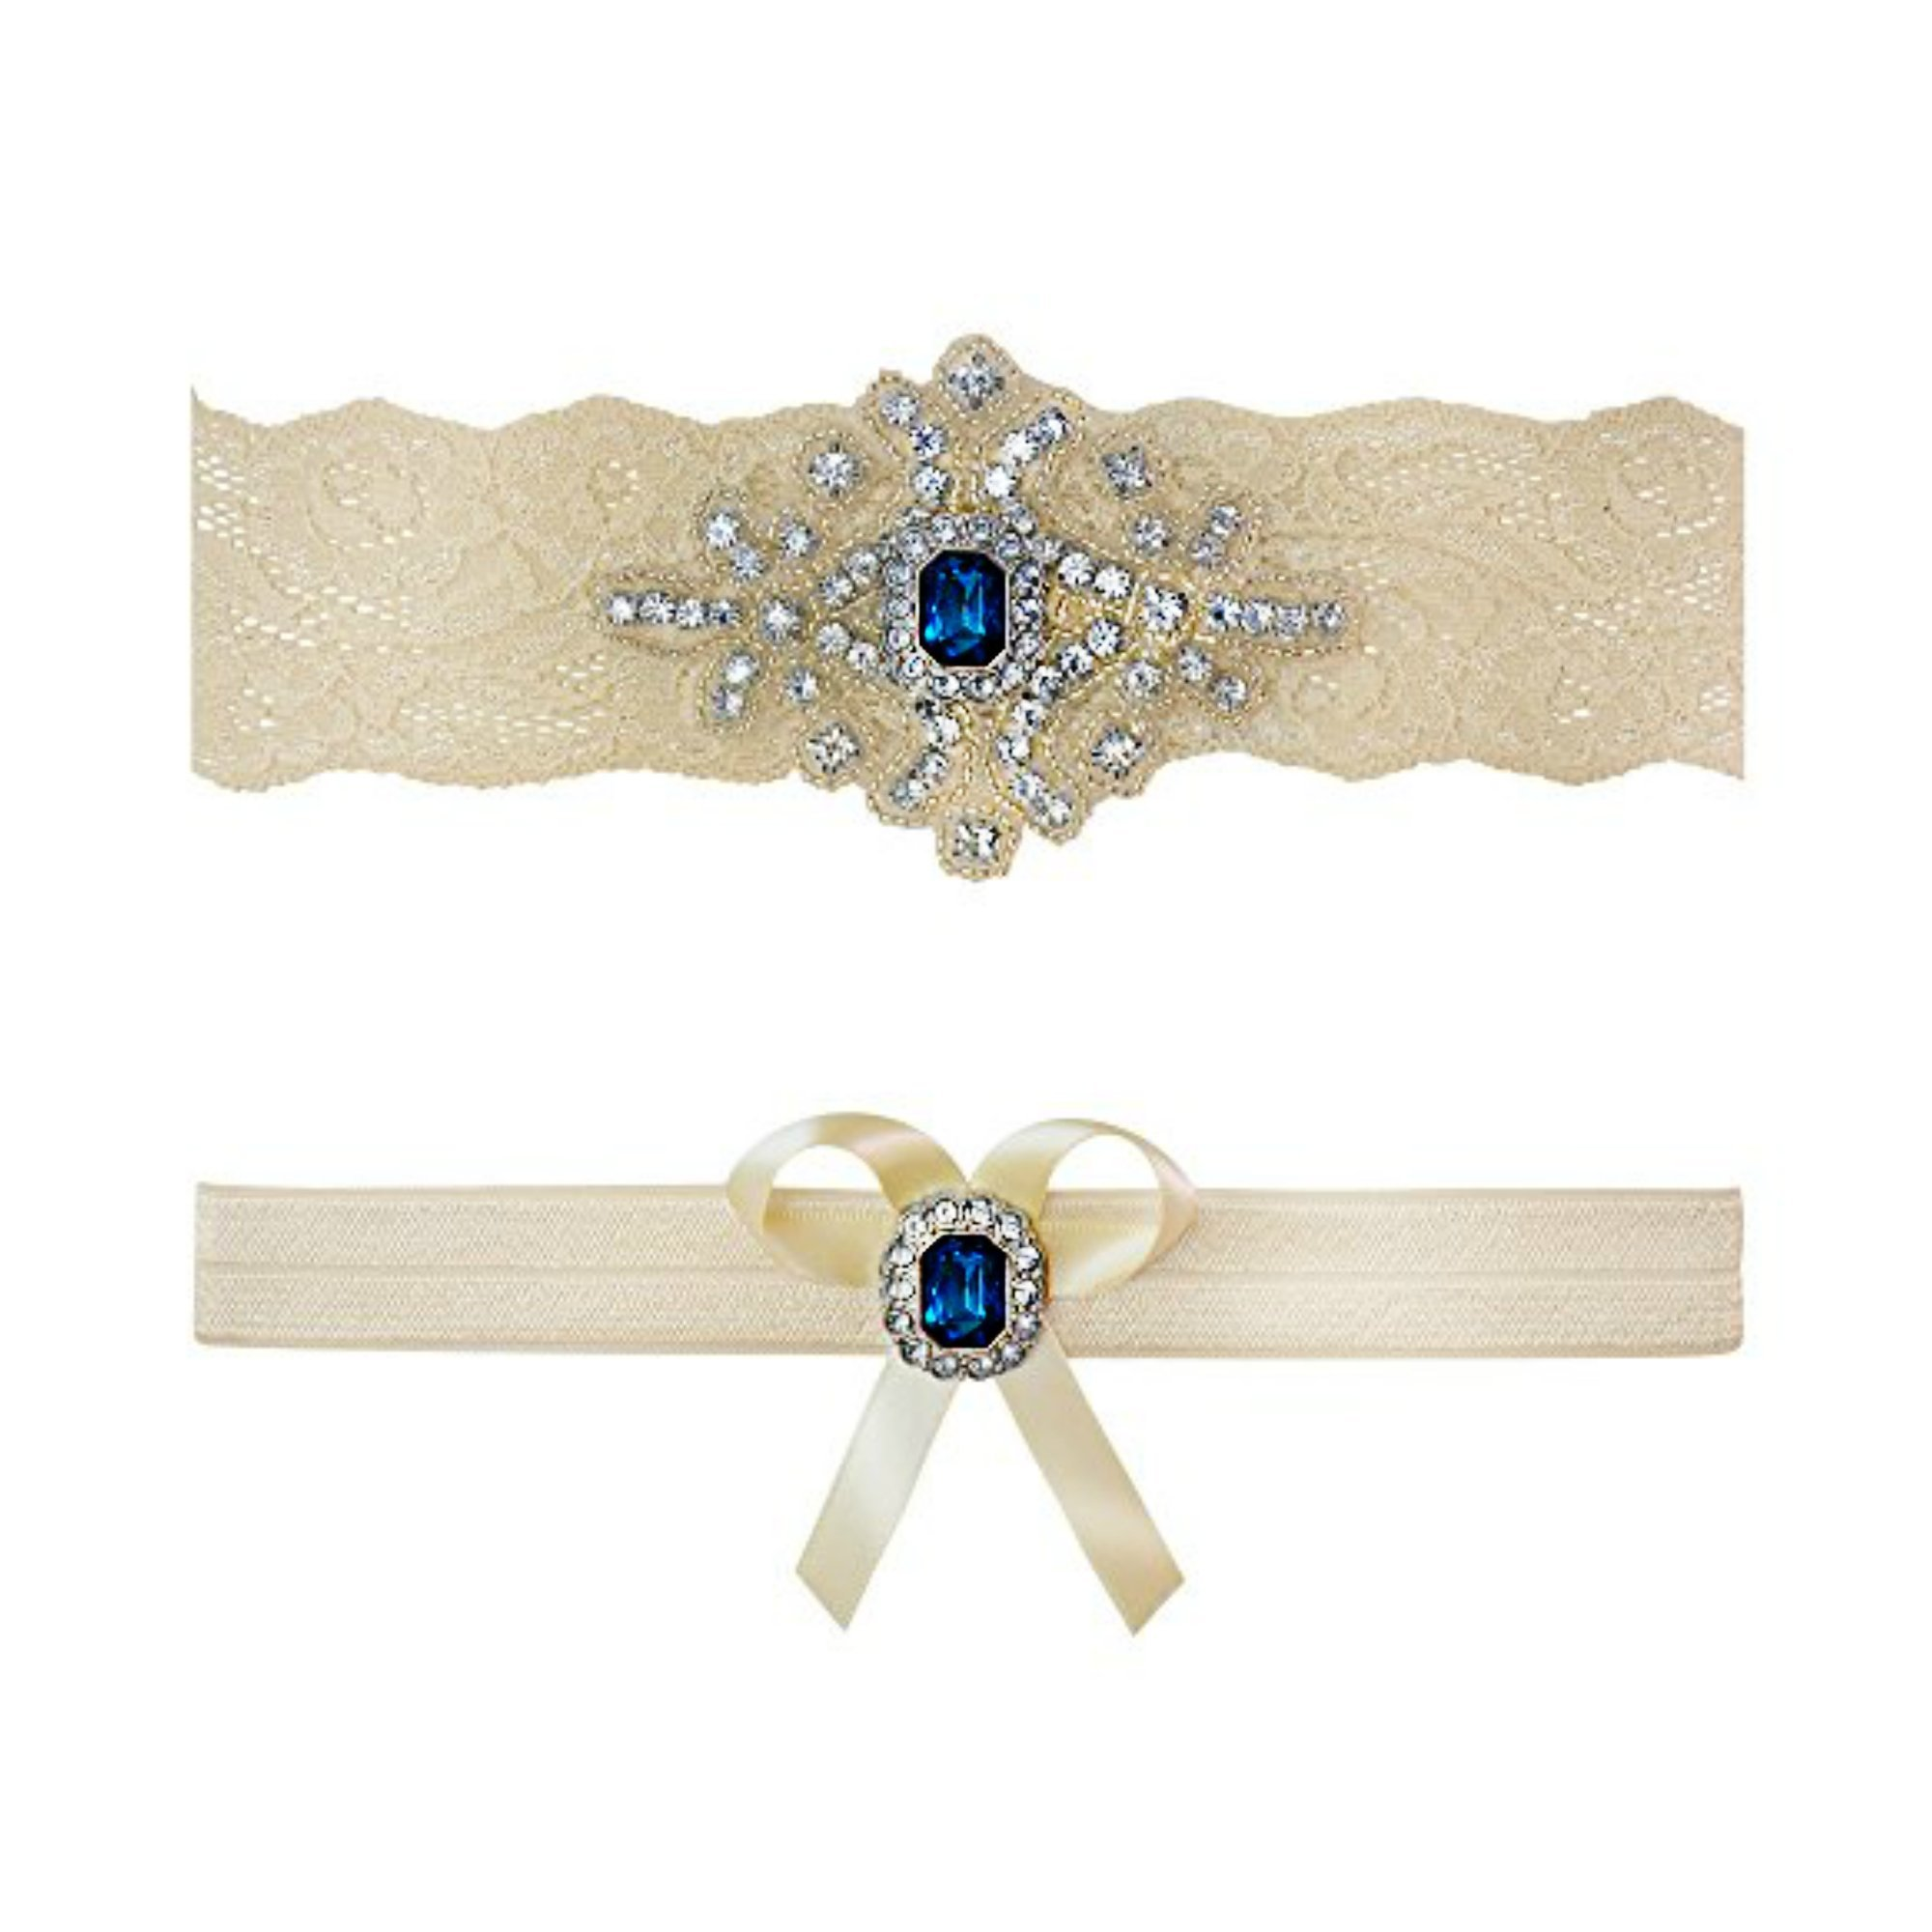 Ivory Sapphire Blue Wedding Bridal Garter Set Keepsake Toss (Large (20'' - 21''))